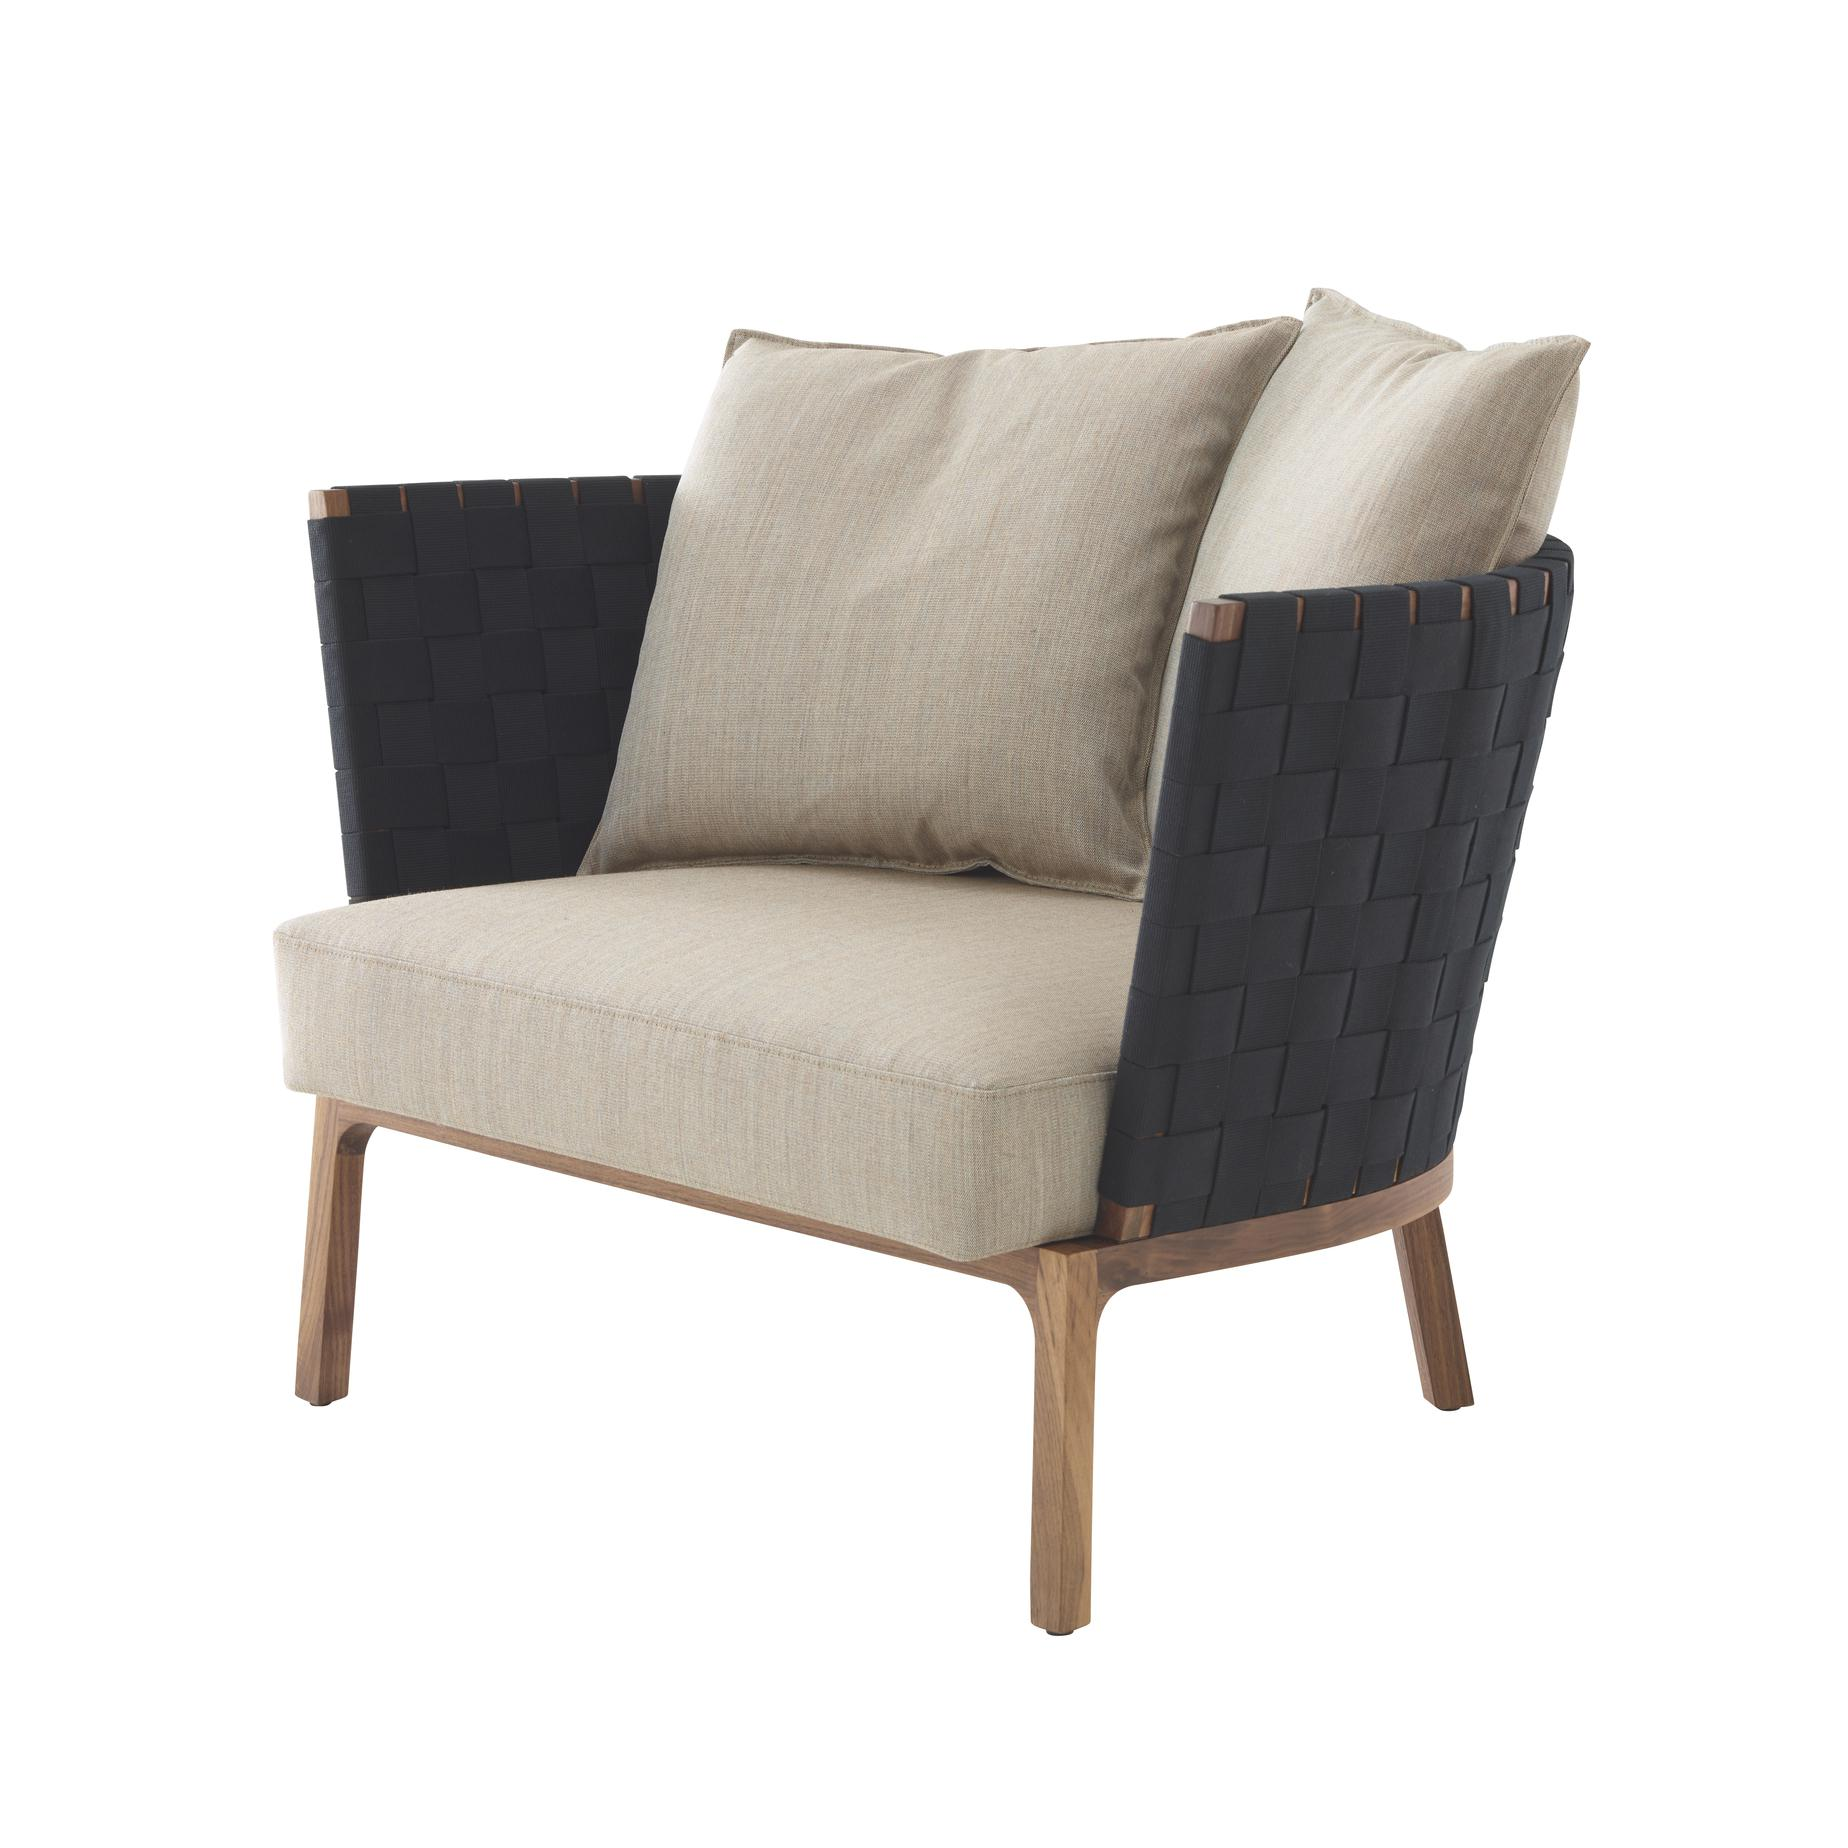 Mon Repos Armchairs From Designer Peter Maly Ligne Roset